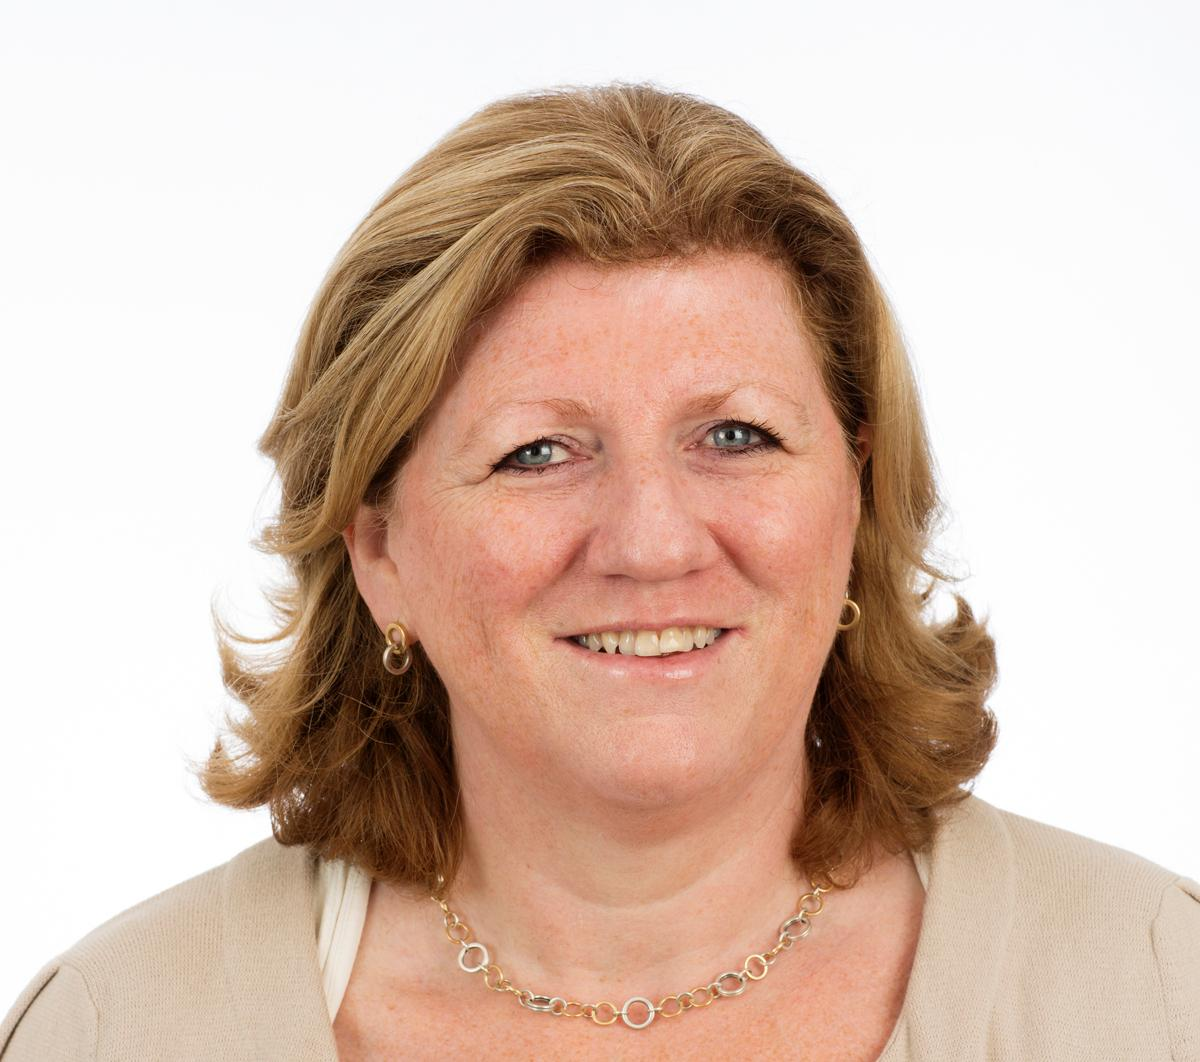 Sally Balcombe took charge of the UK tourism agency in September 2014